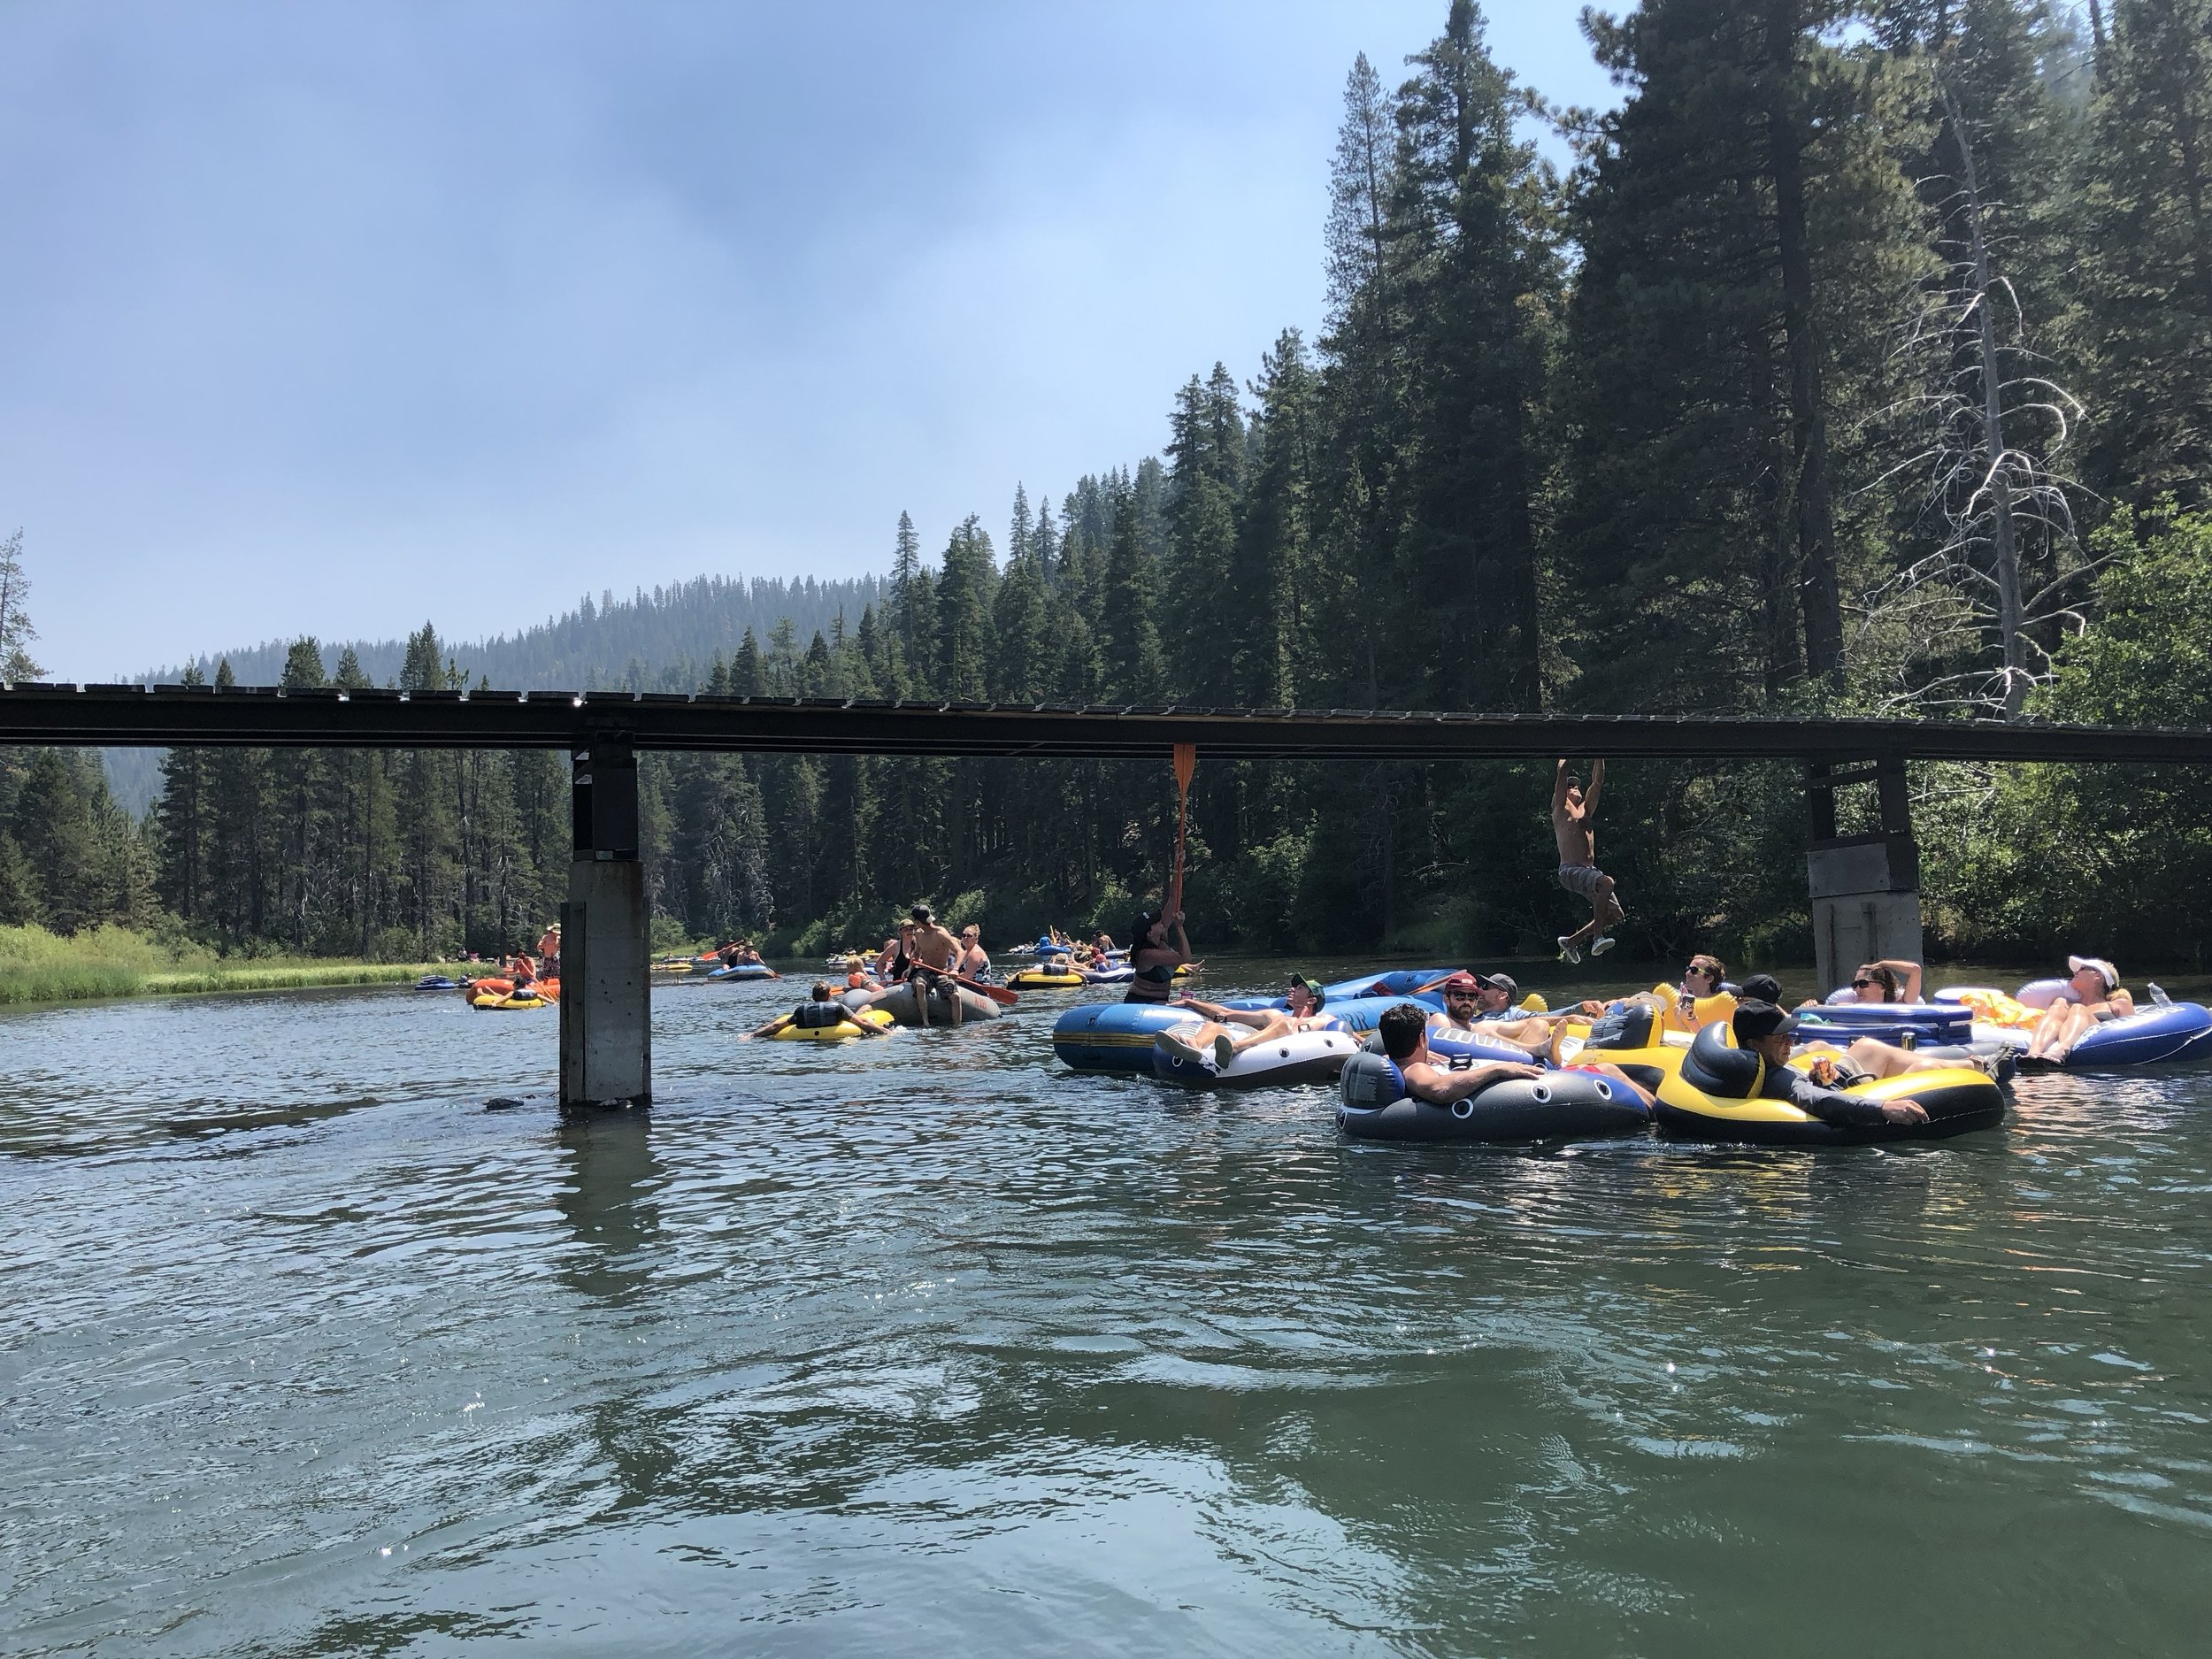 Weekend Warriors on the Truckee River